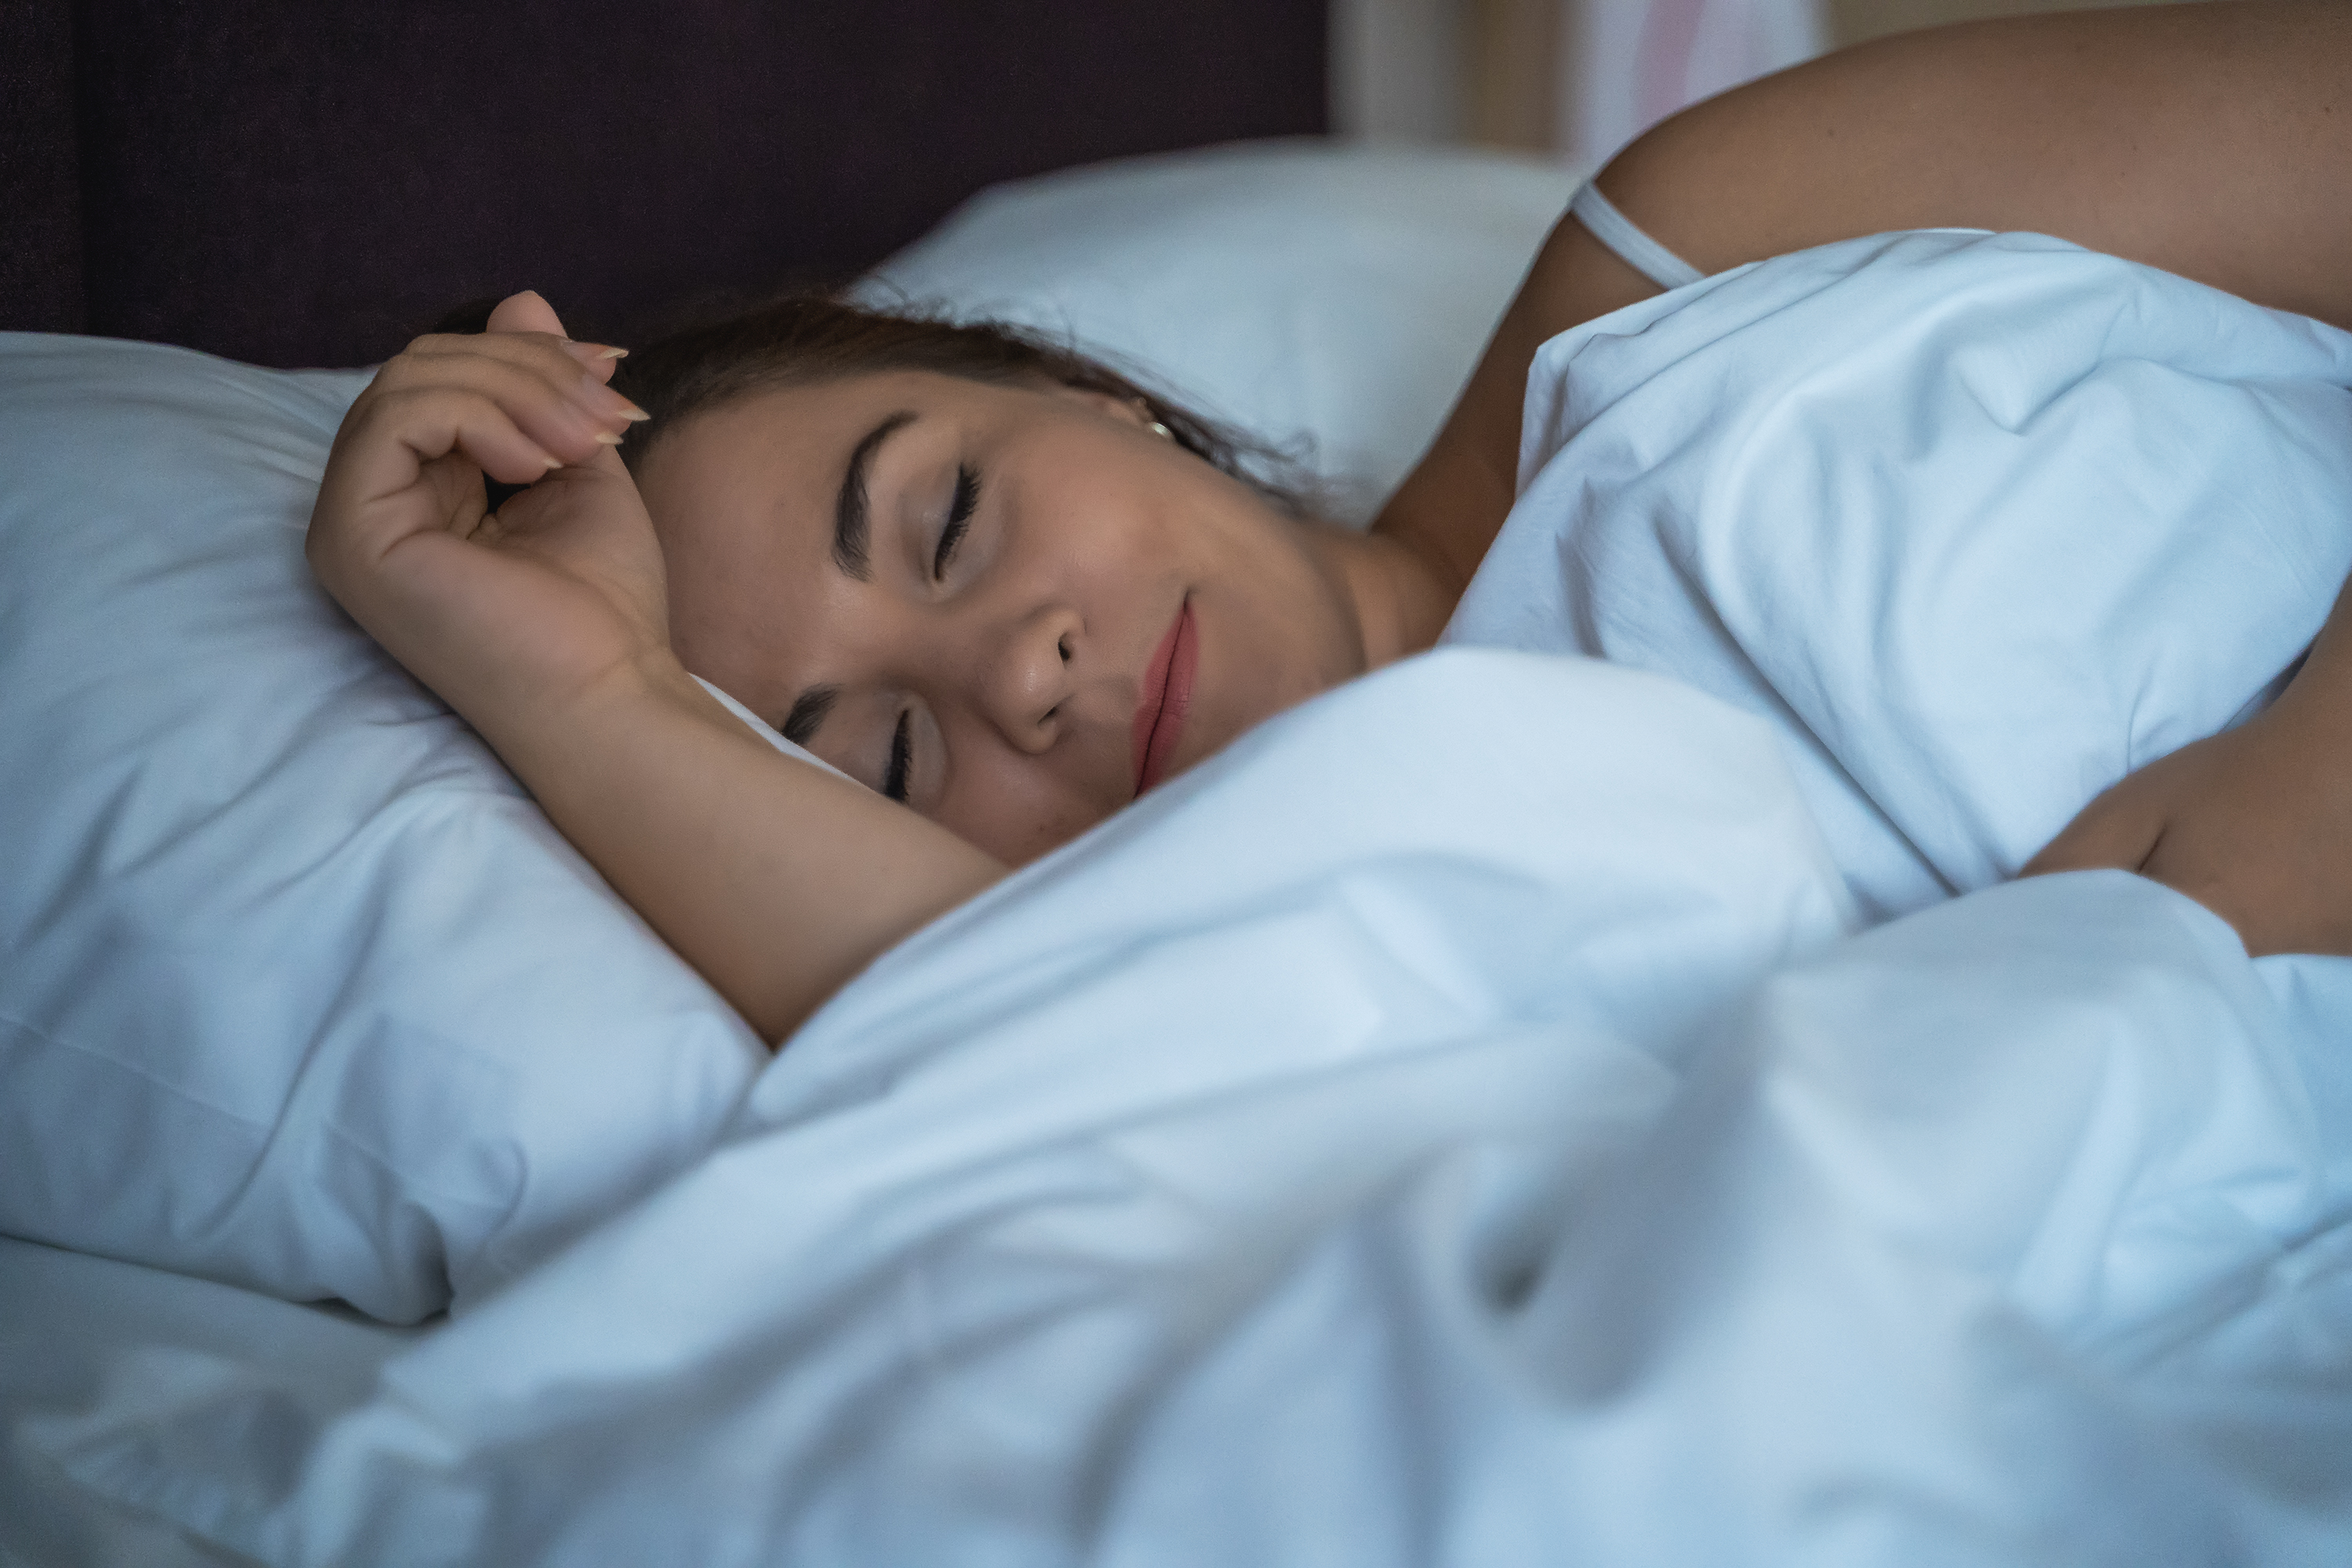 Suffering from Insomnia? — A Guide on How to Fall Asleep Faster